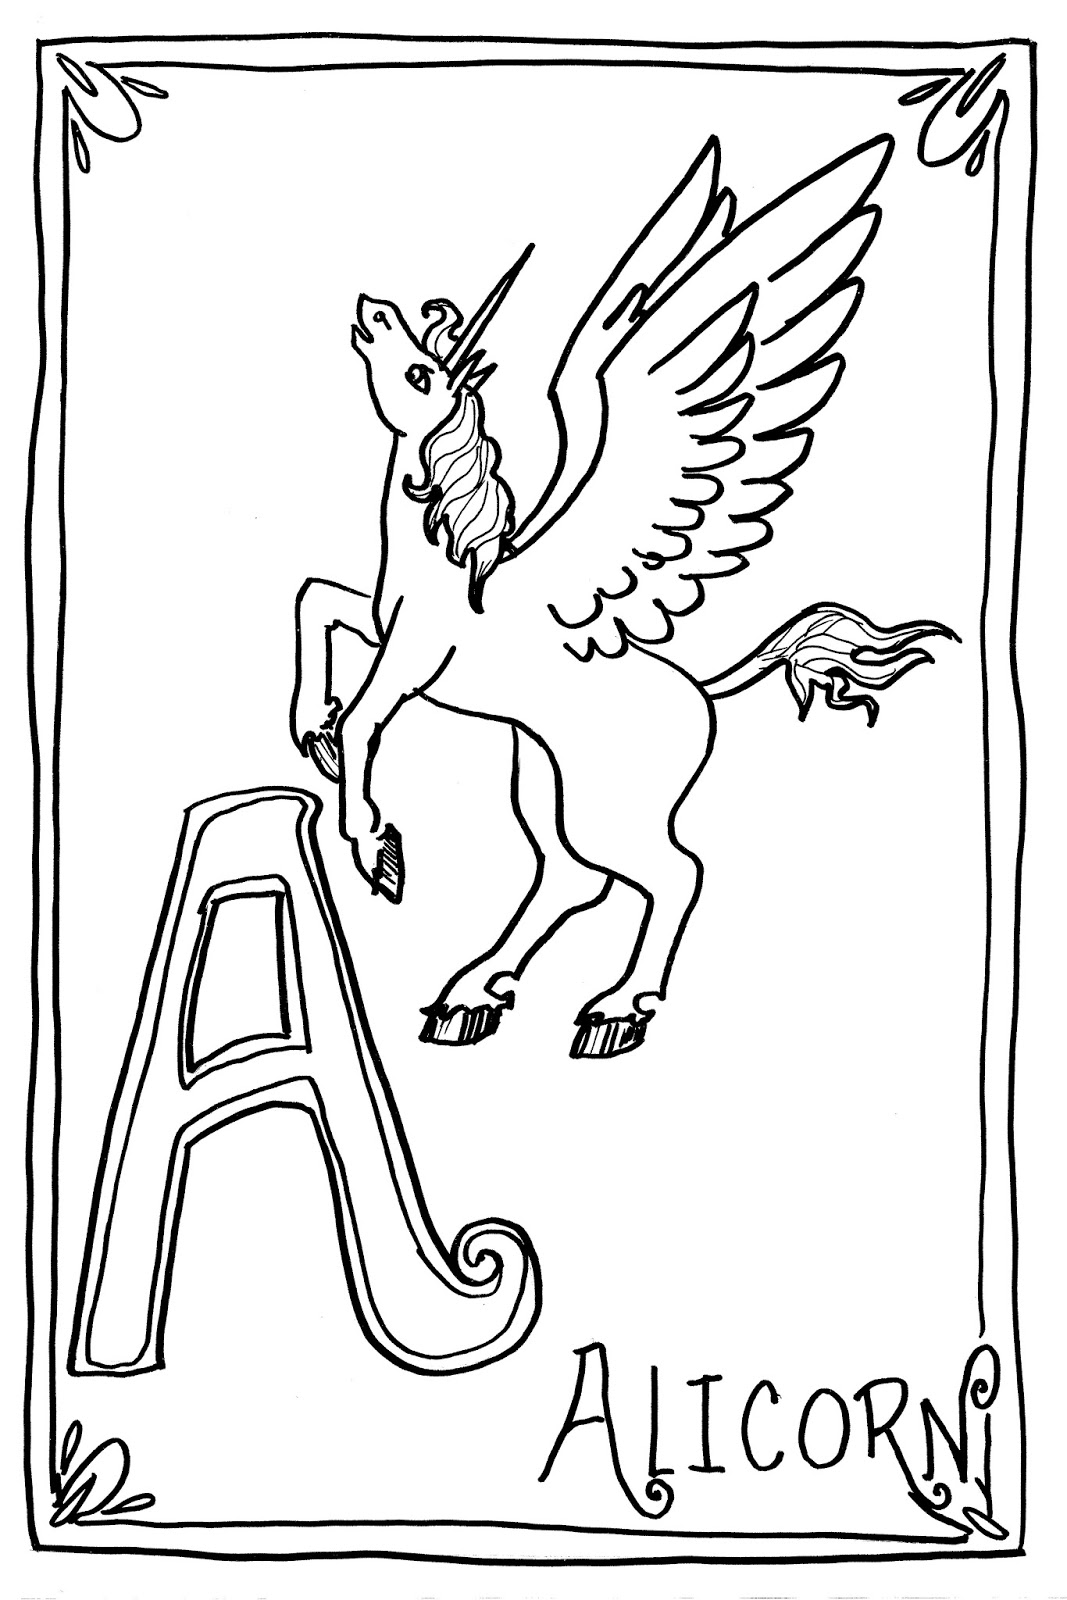 alicorn mlp coloring page alicorn pages coloring pages alicorn mlp page coloring